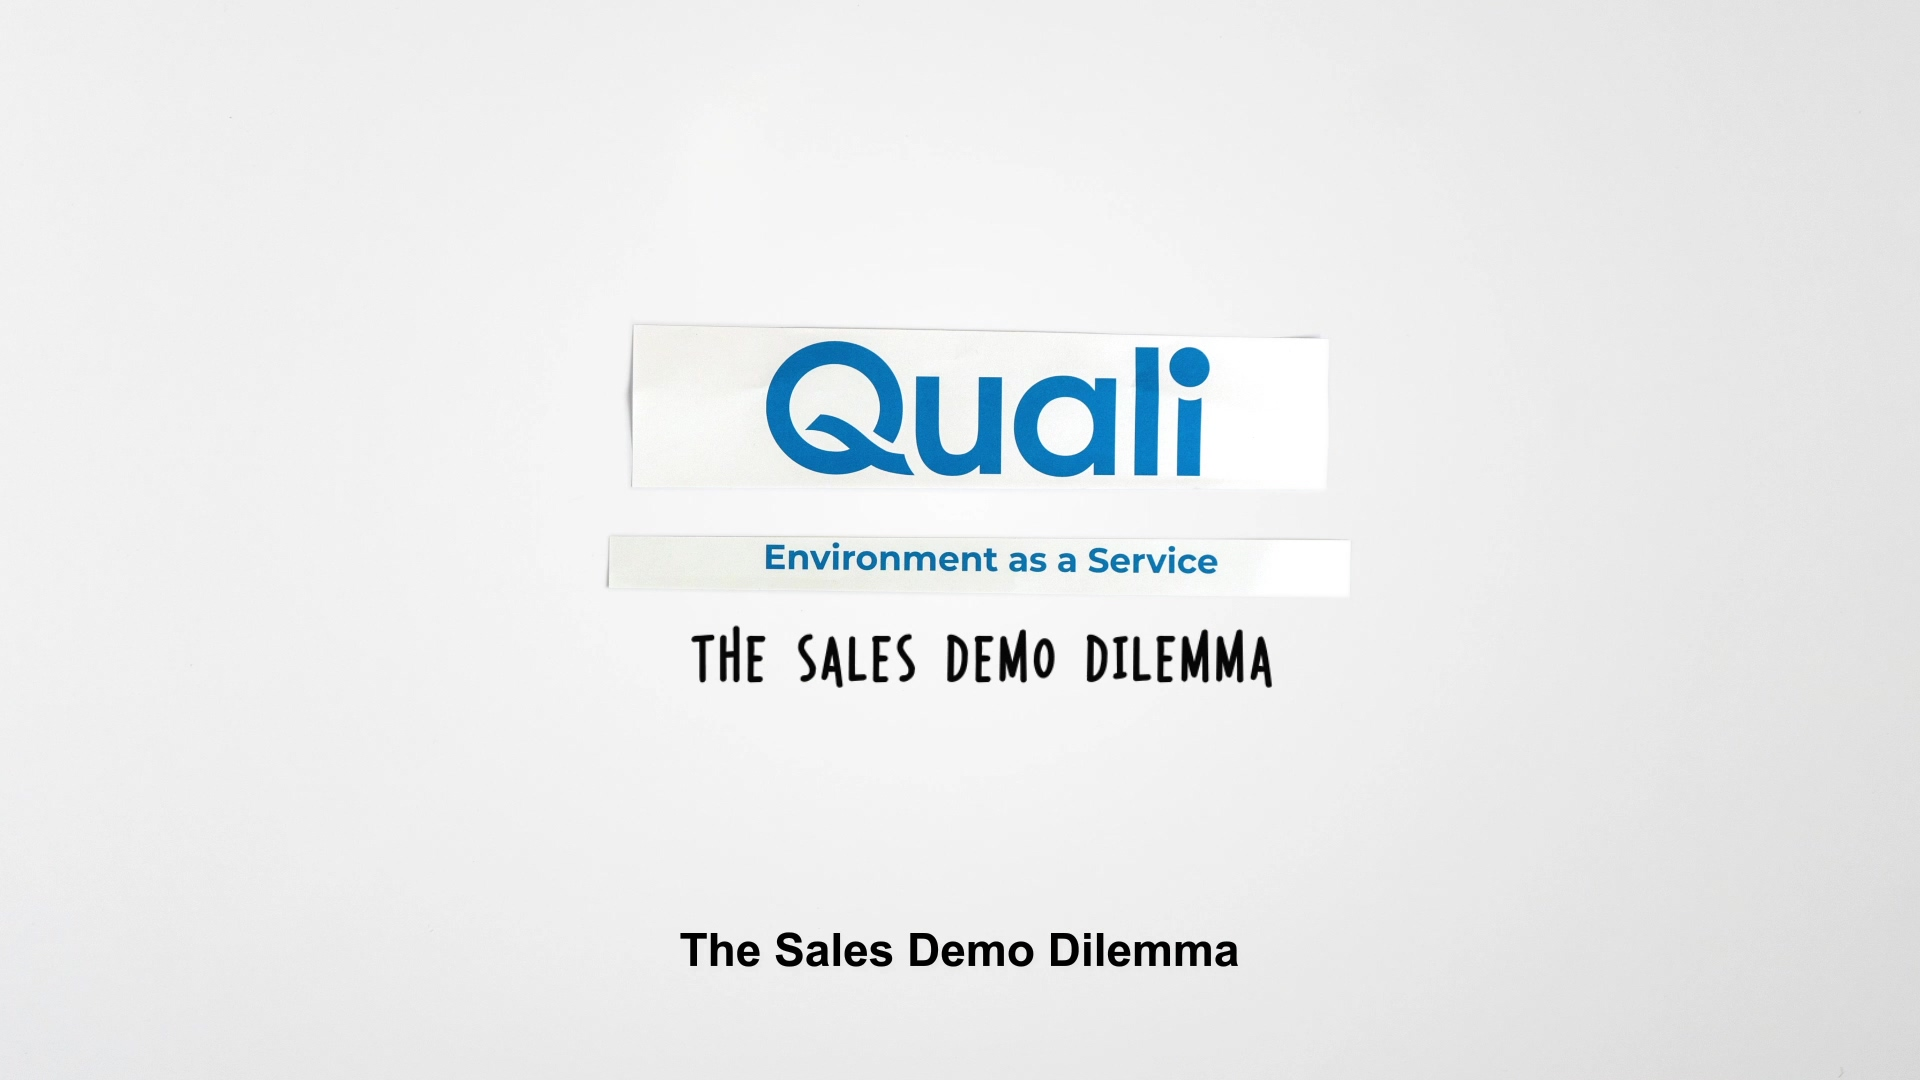 Solve the Sales Demo Dilemma with Enviornment as a Service from Quali Video